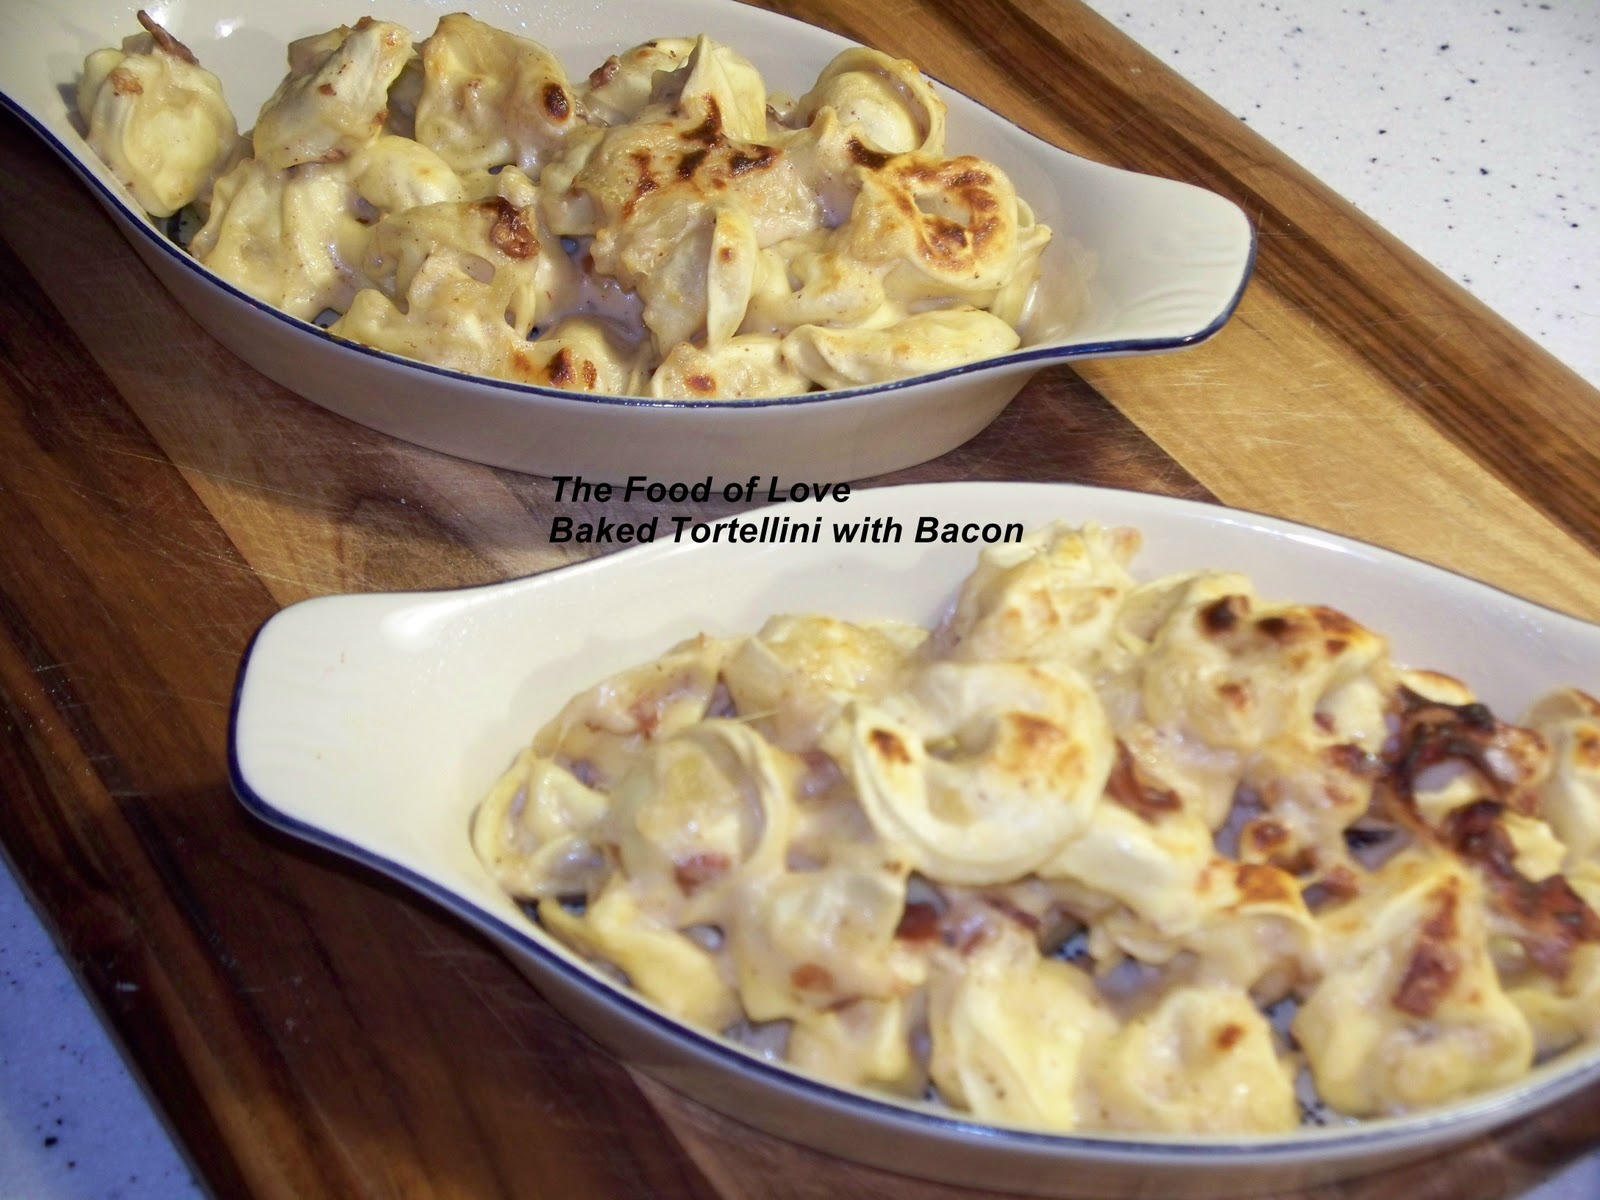 THE FOOD OF LOVE: BAKED TORTELLINI WITH BACON